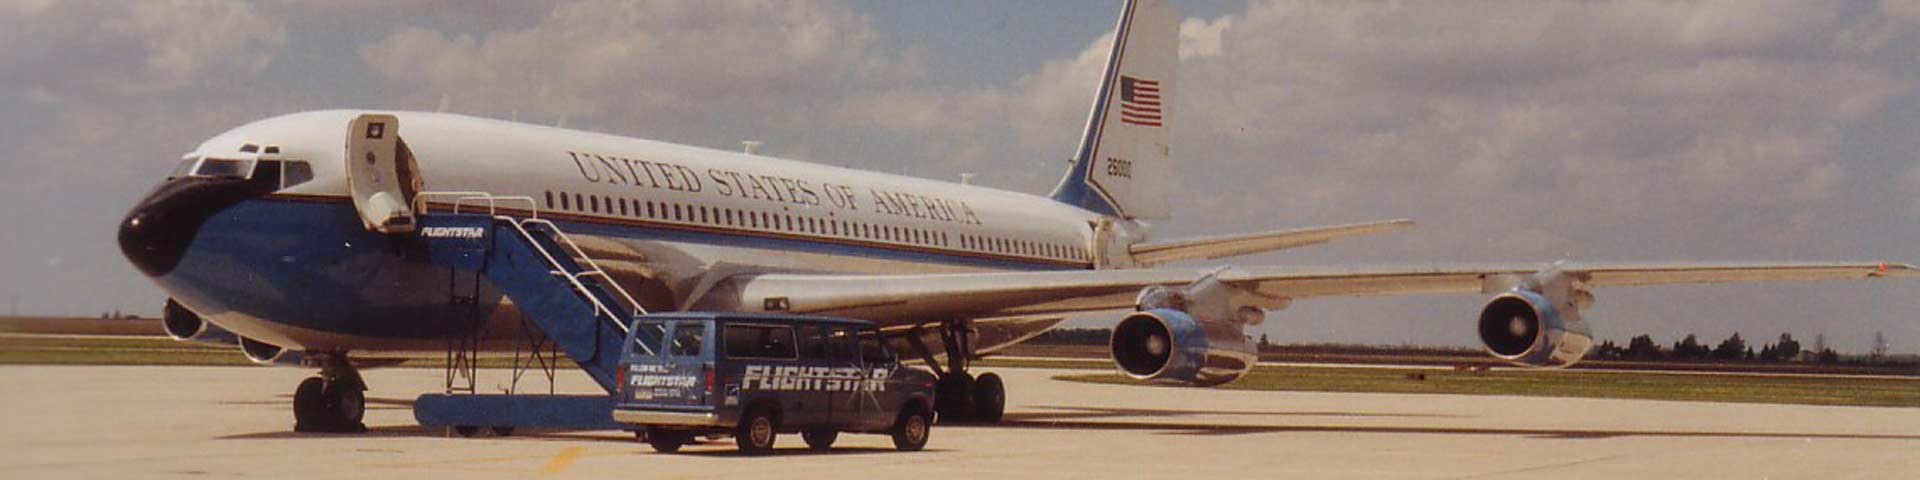 Airforce One Clinton